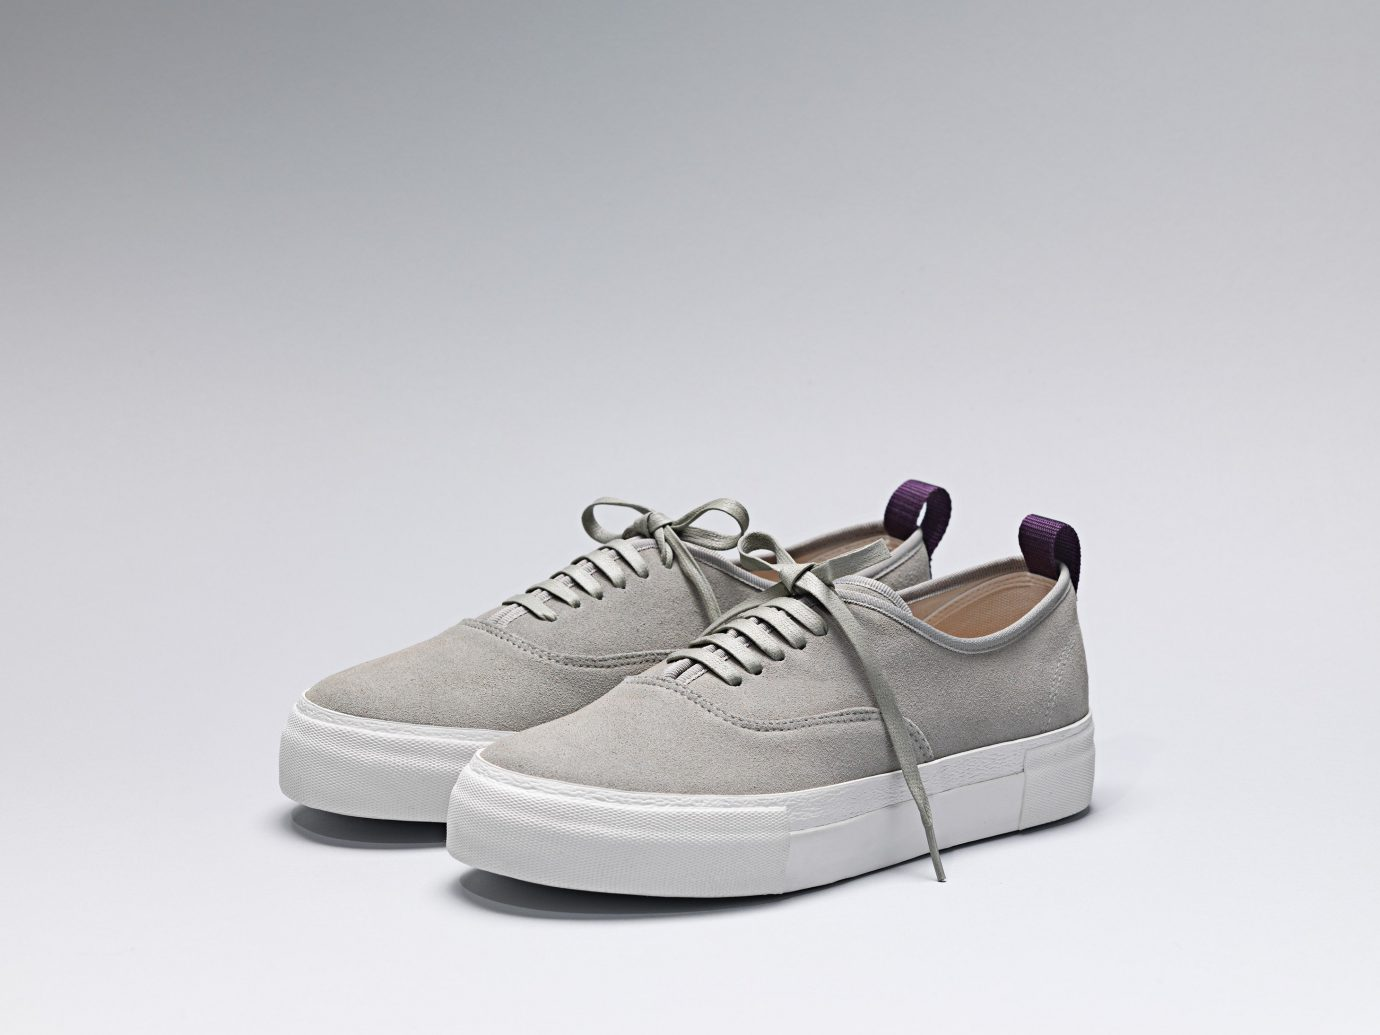 Style + Design footwear indoor white shoe sneakers leather athletic shoe brand textile outdoor shoe magenta feet